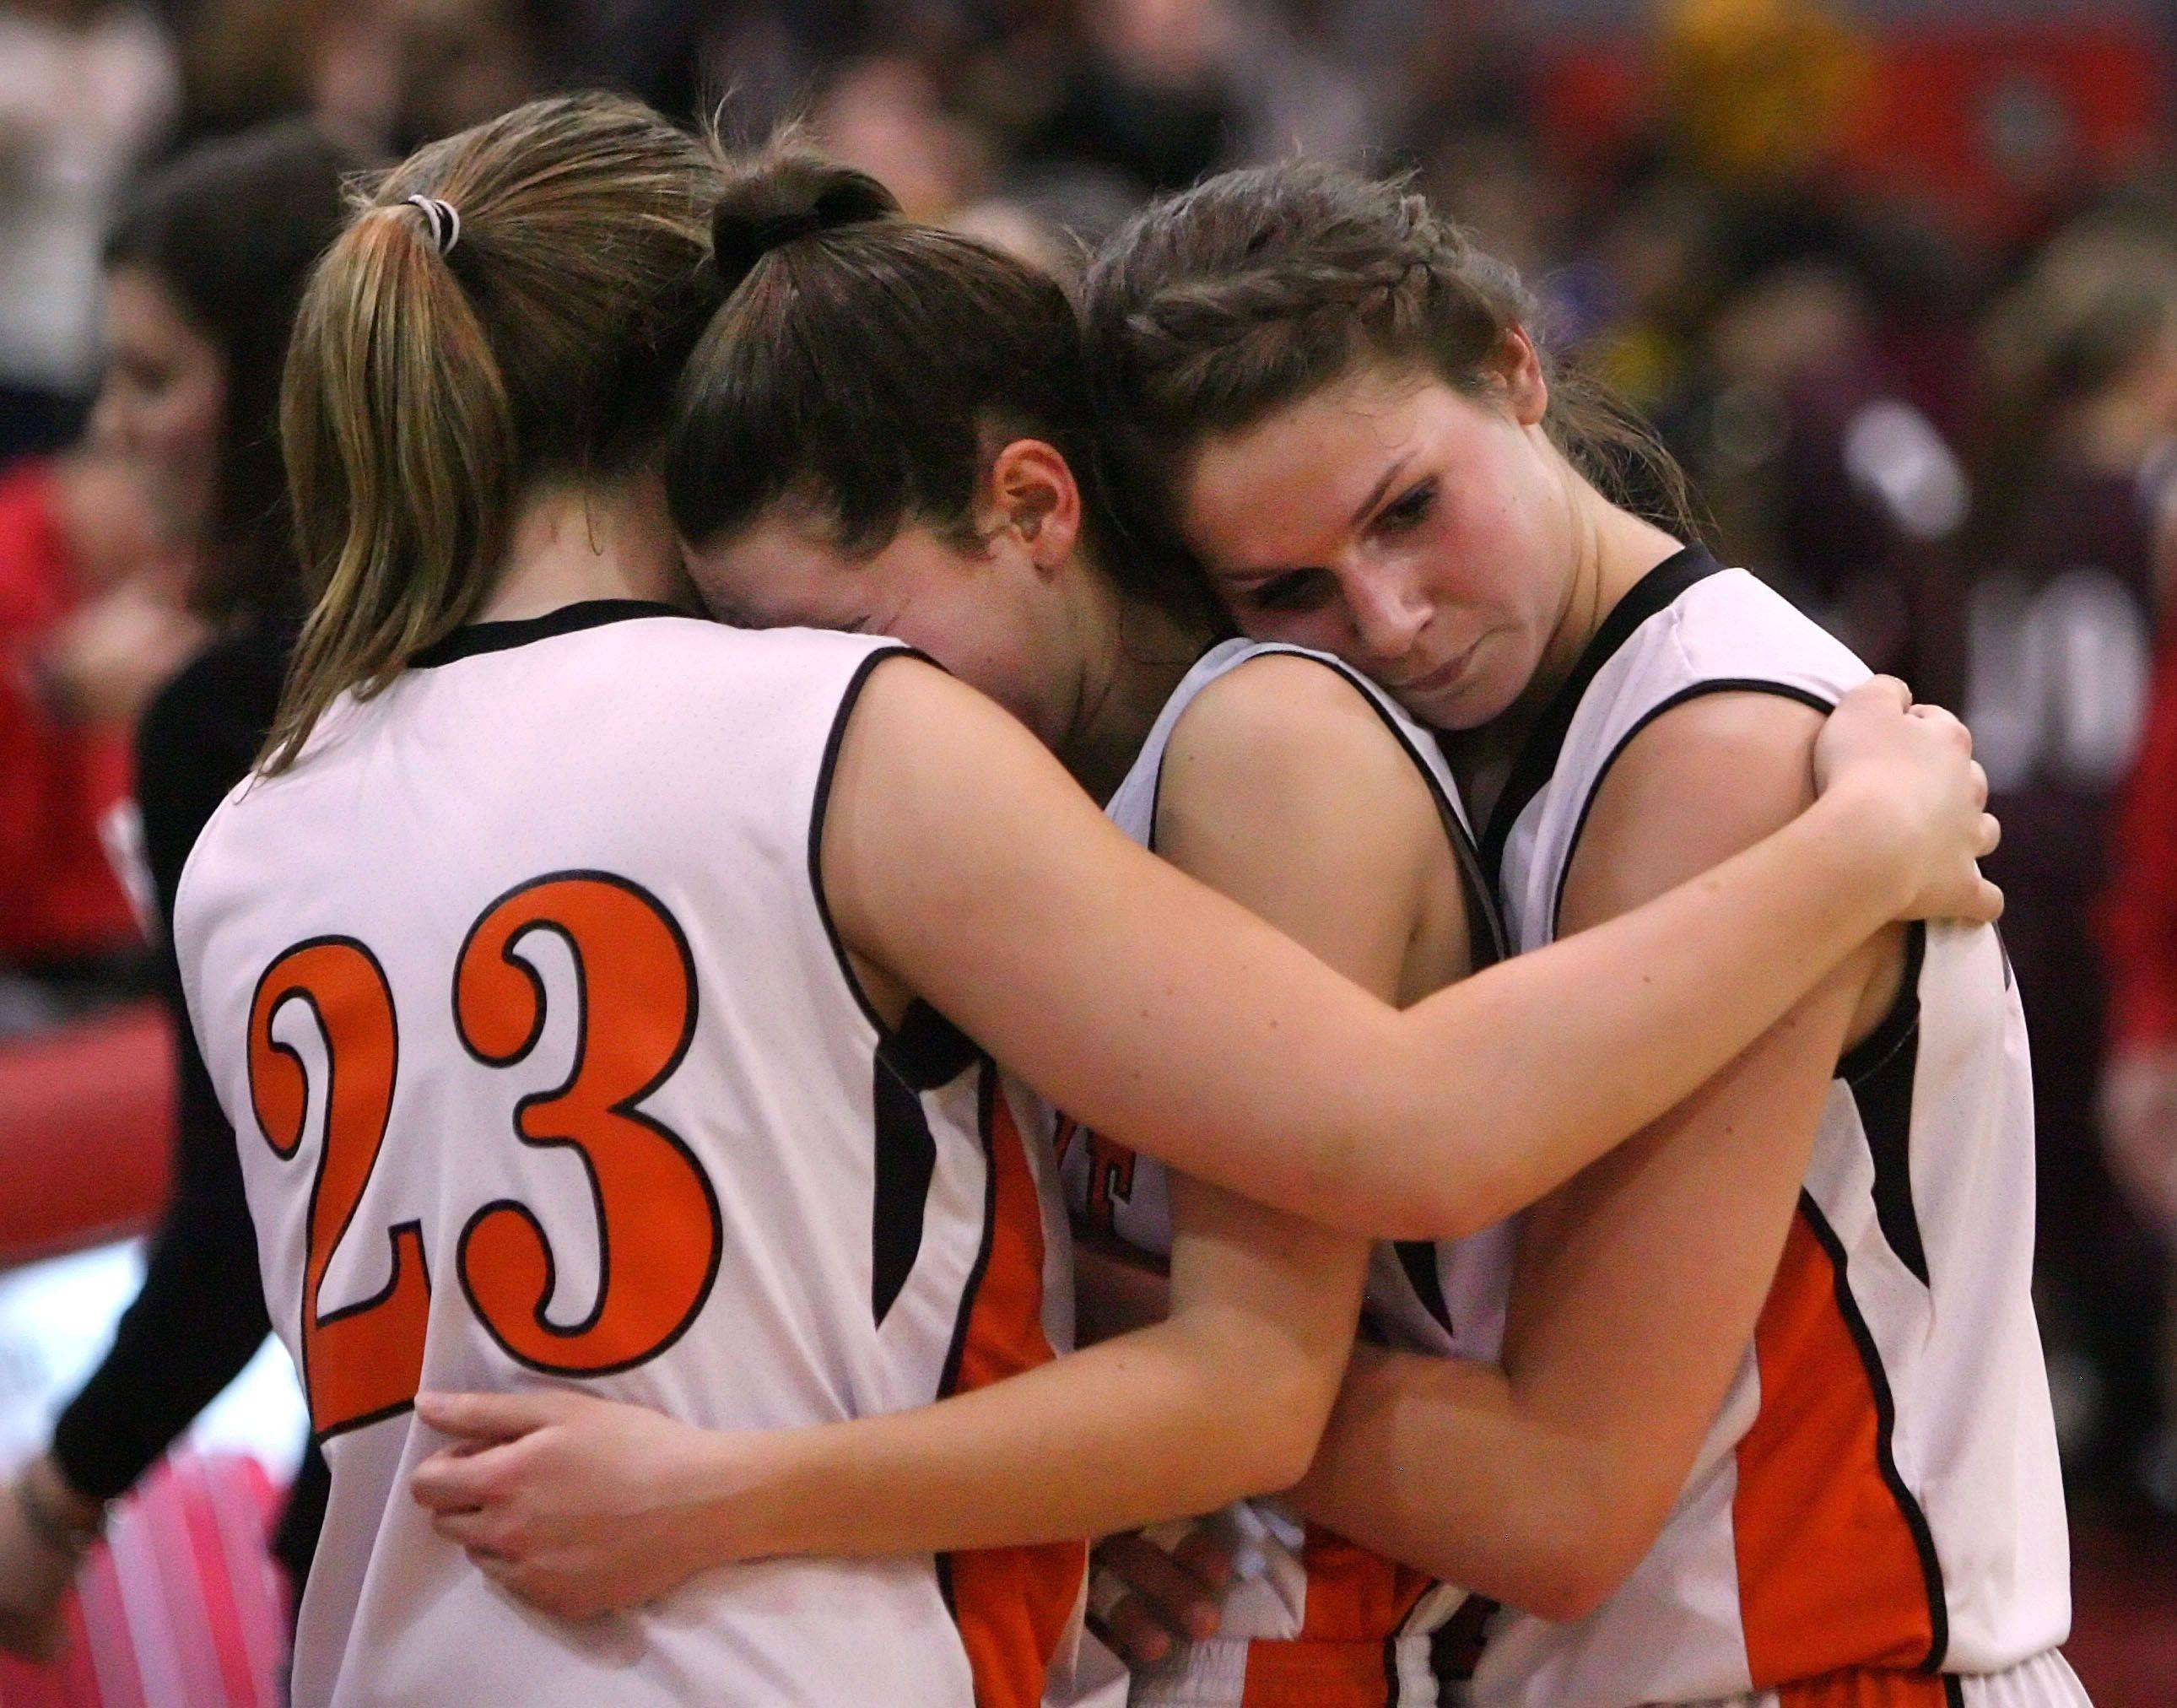 Libertyville girls from left, Molly Moon, Valerie Van Roeyen and Kaca Savatic embrace after losing to Zion-Benton.